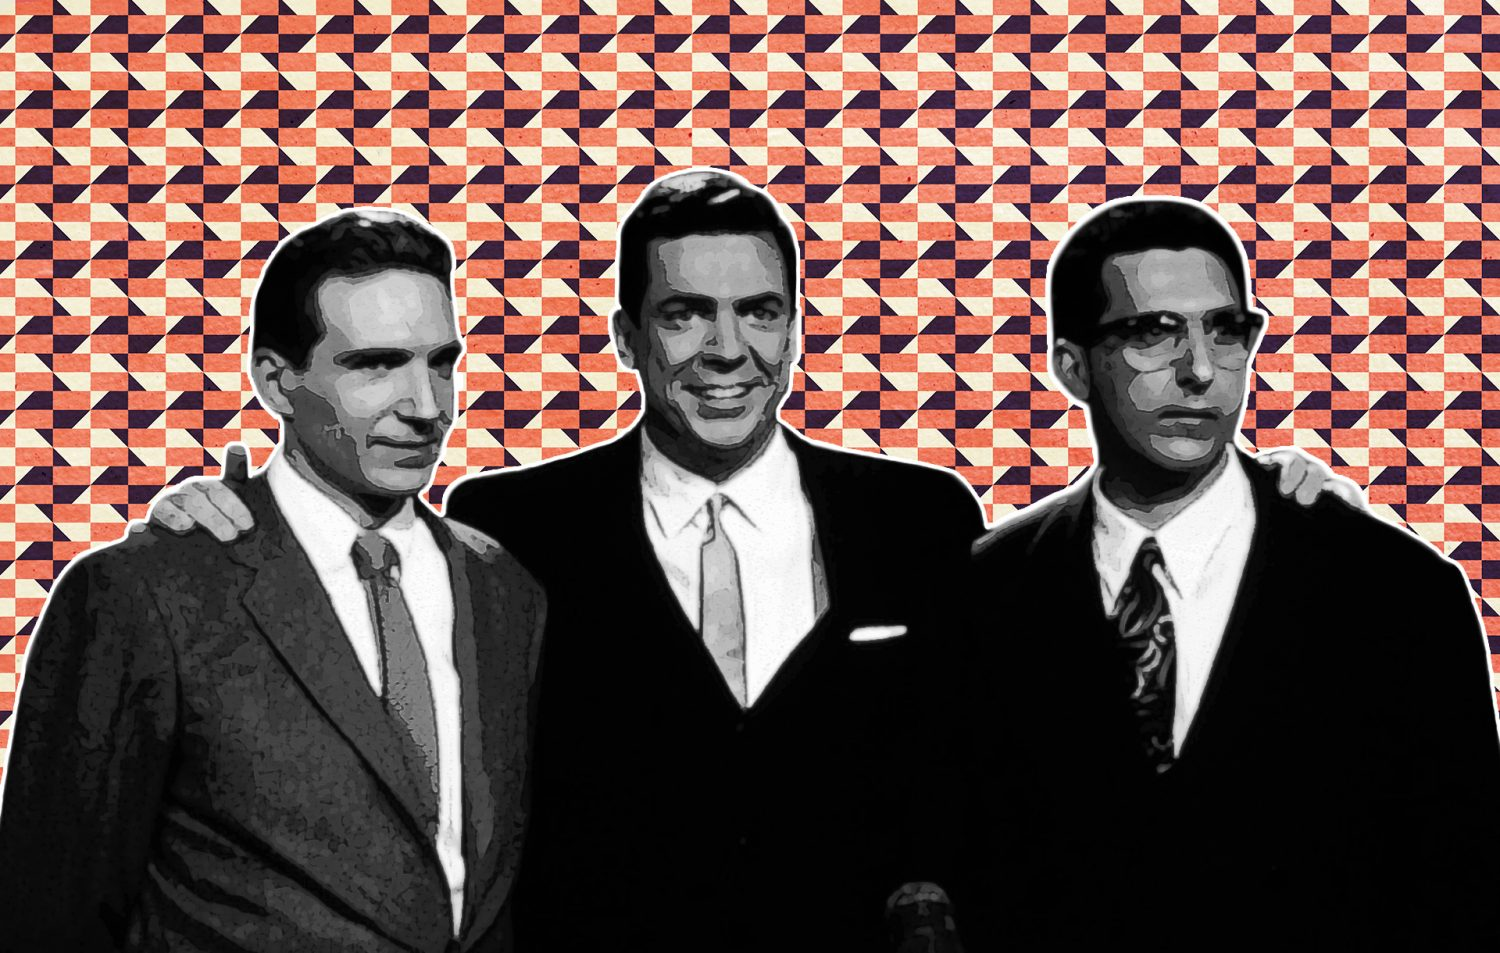 """""""They Just Wanted To Watch The Money"""": 'Quiz Show' at 25 